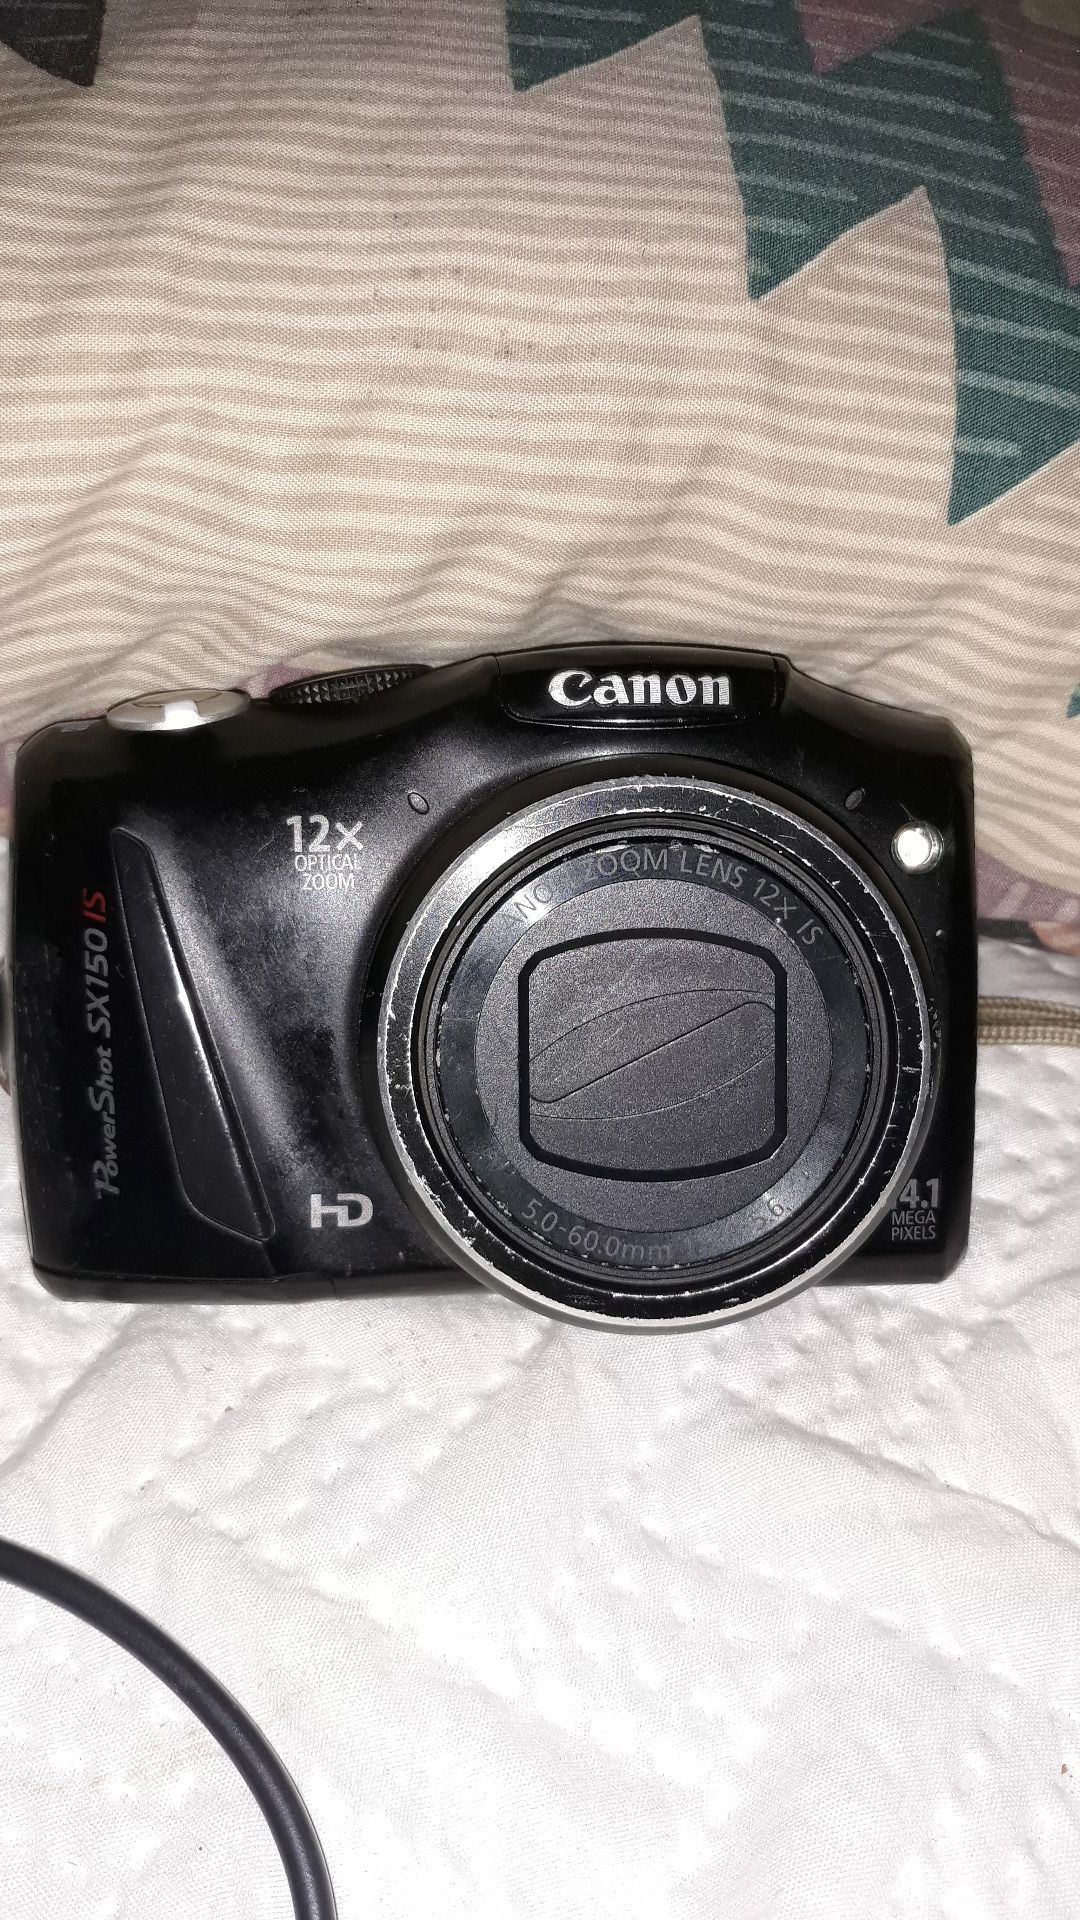 Cannon sx 150is